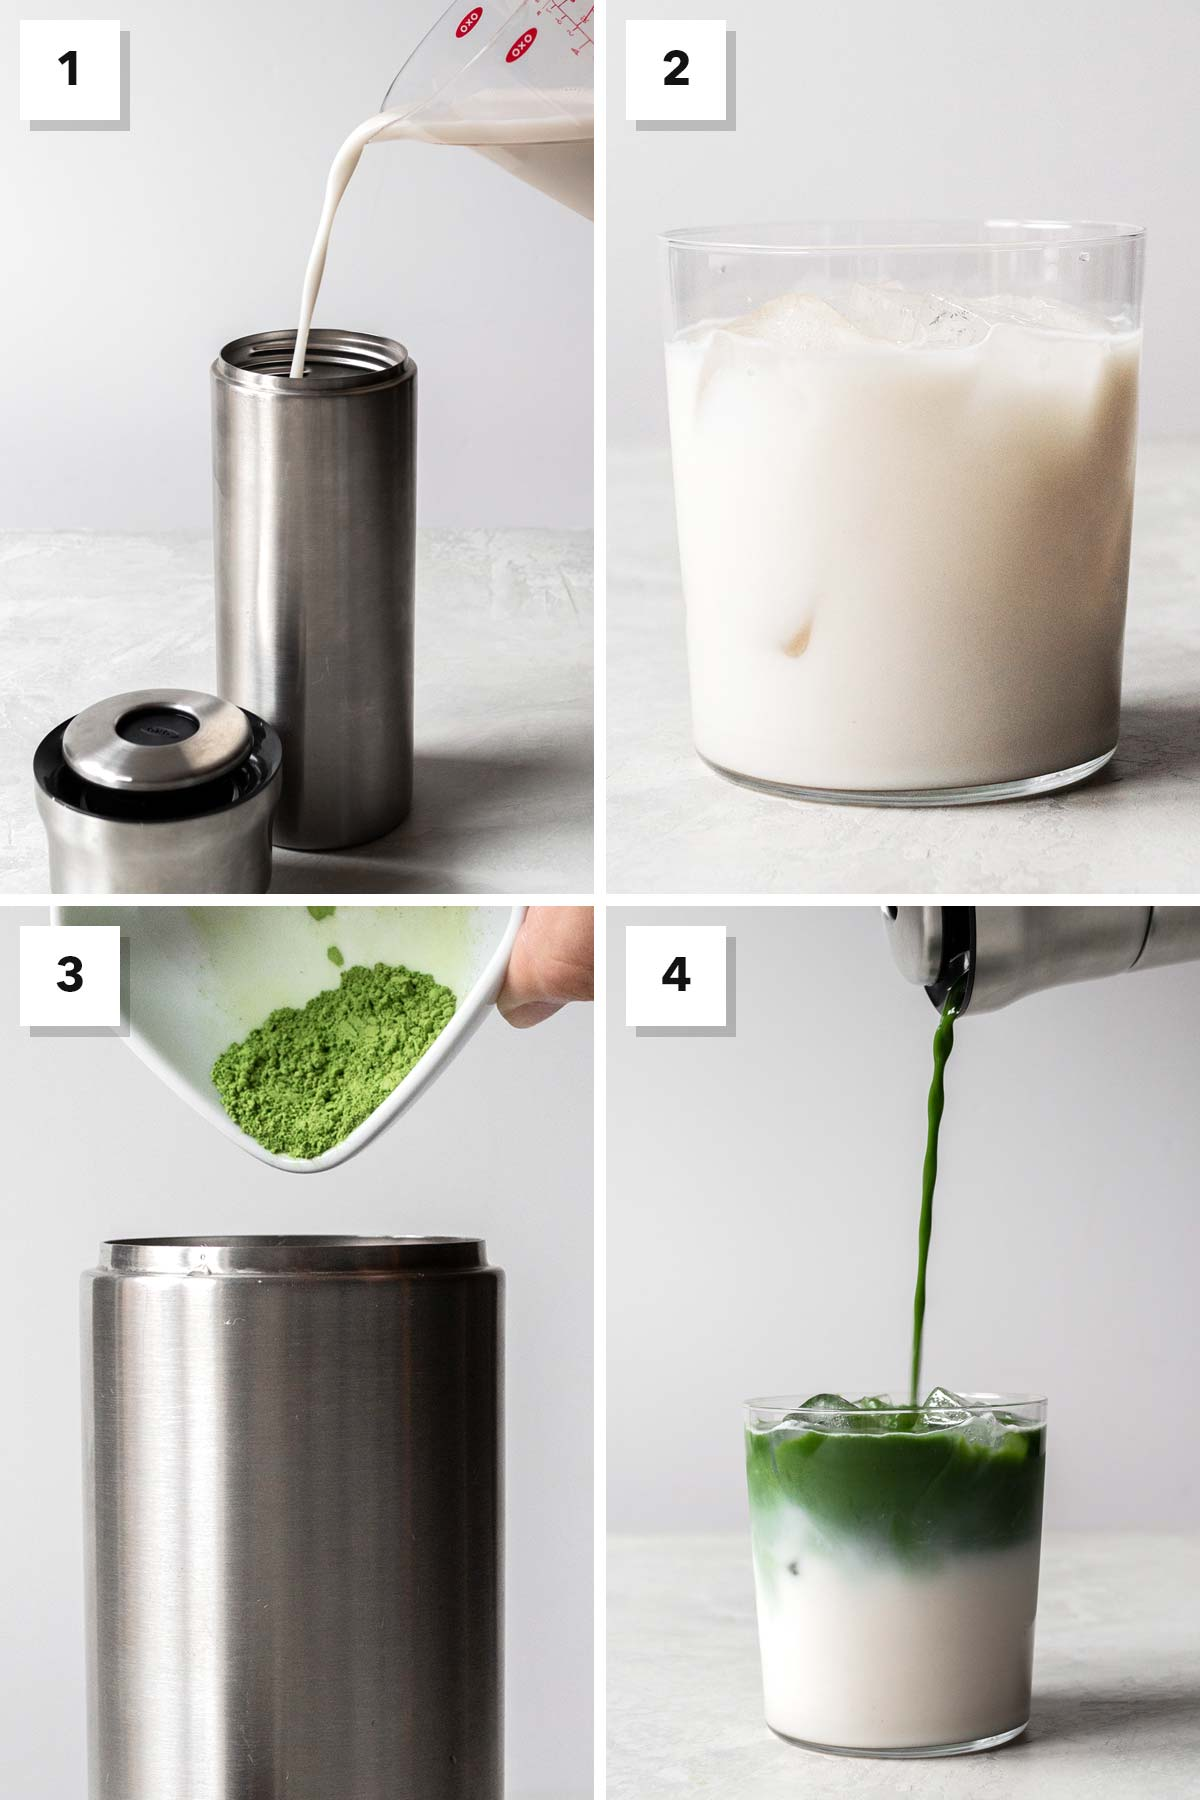 Four image collage showing steps to make a matcha iced latte.